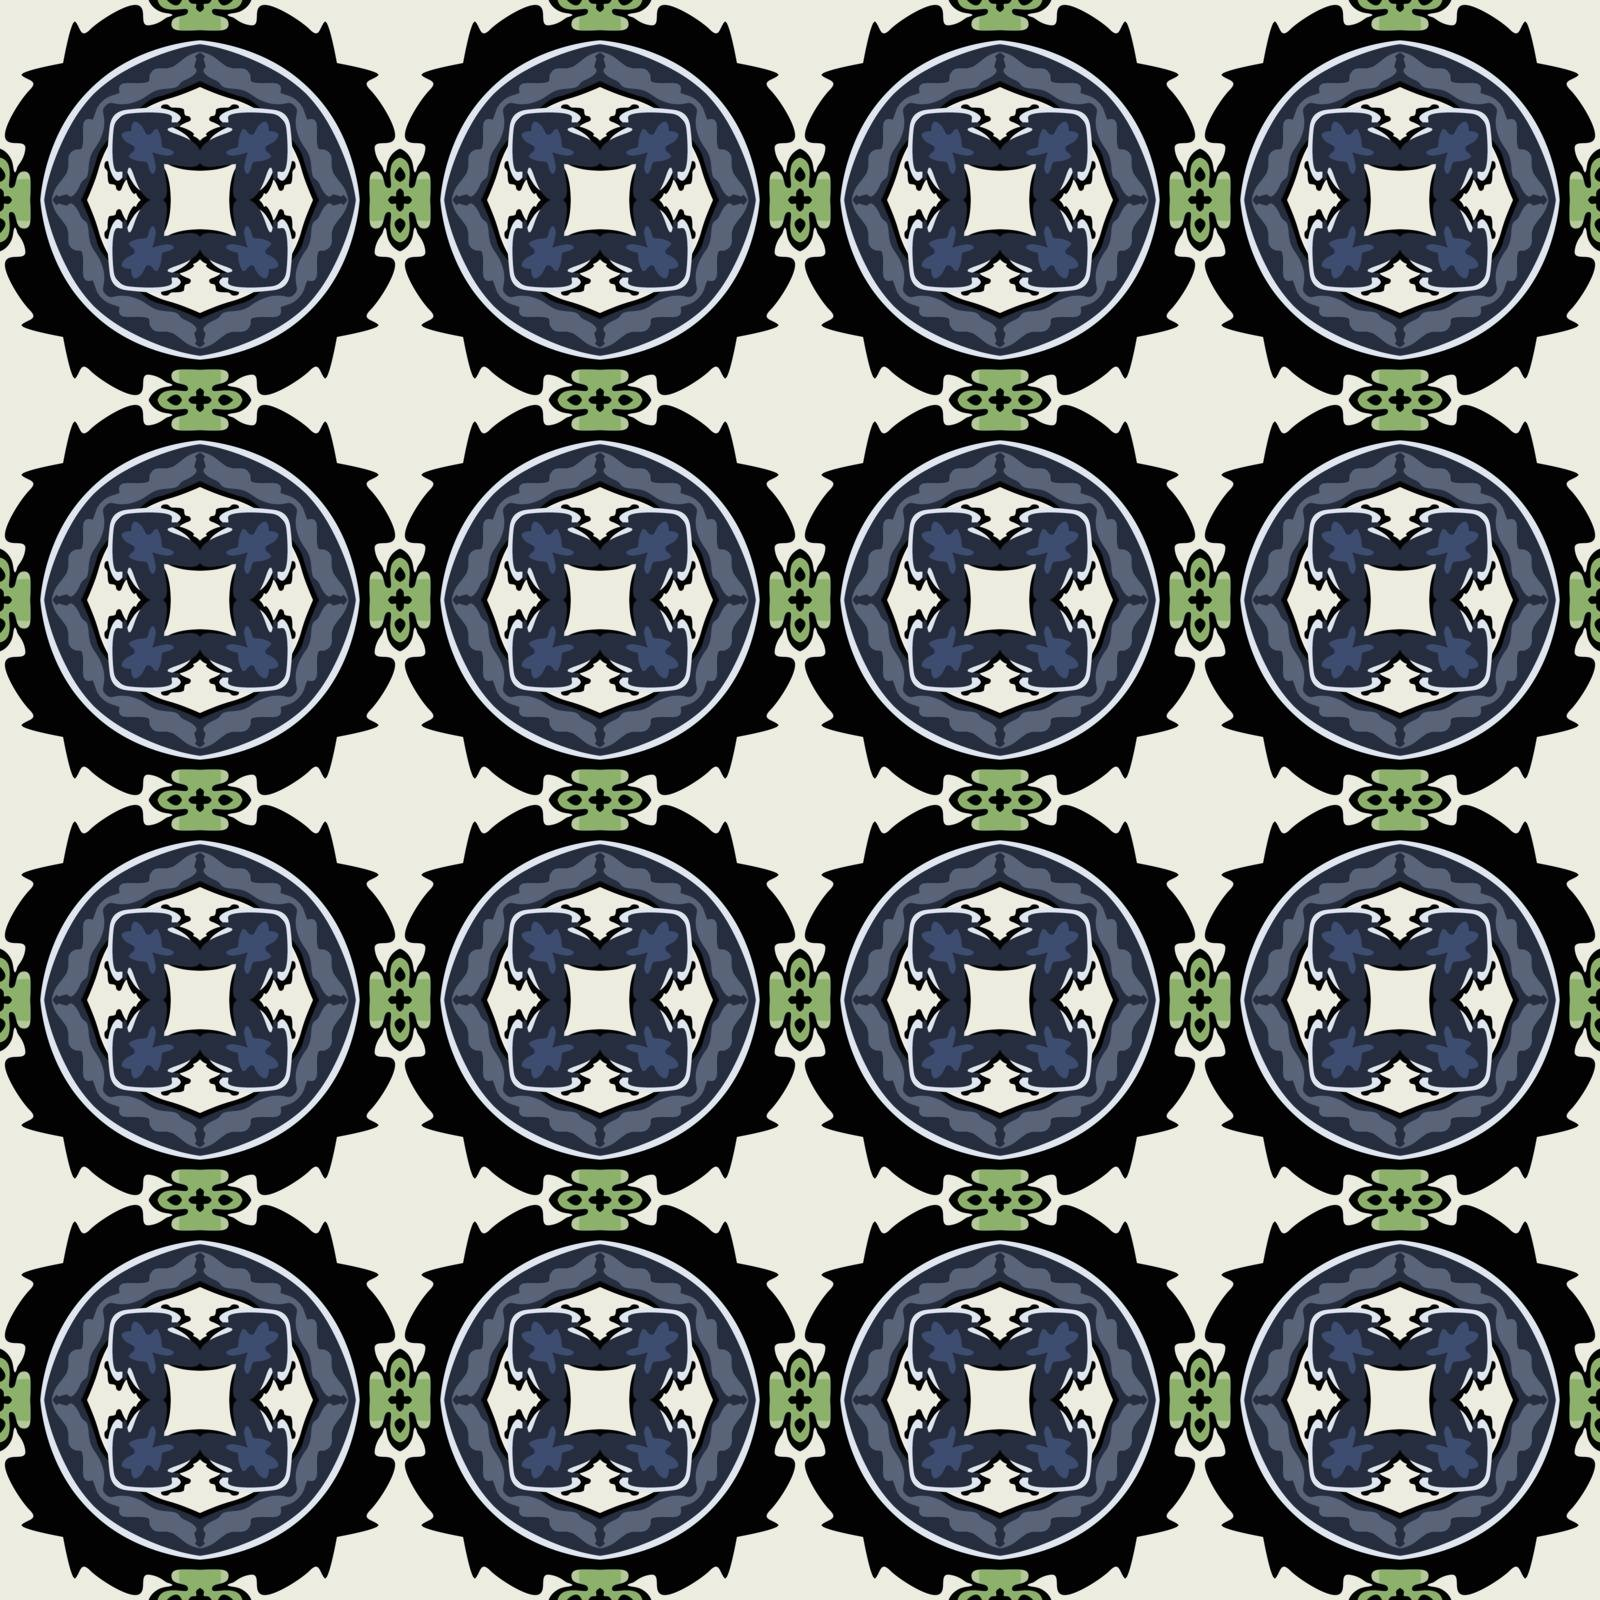 Seamless illustrated pattern made of abstract elements in beige,blue, green and black